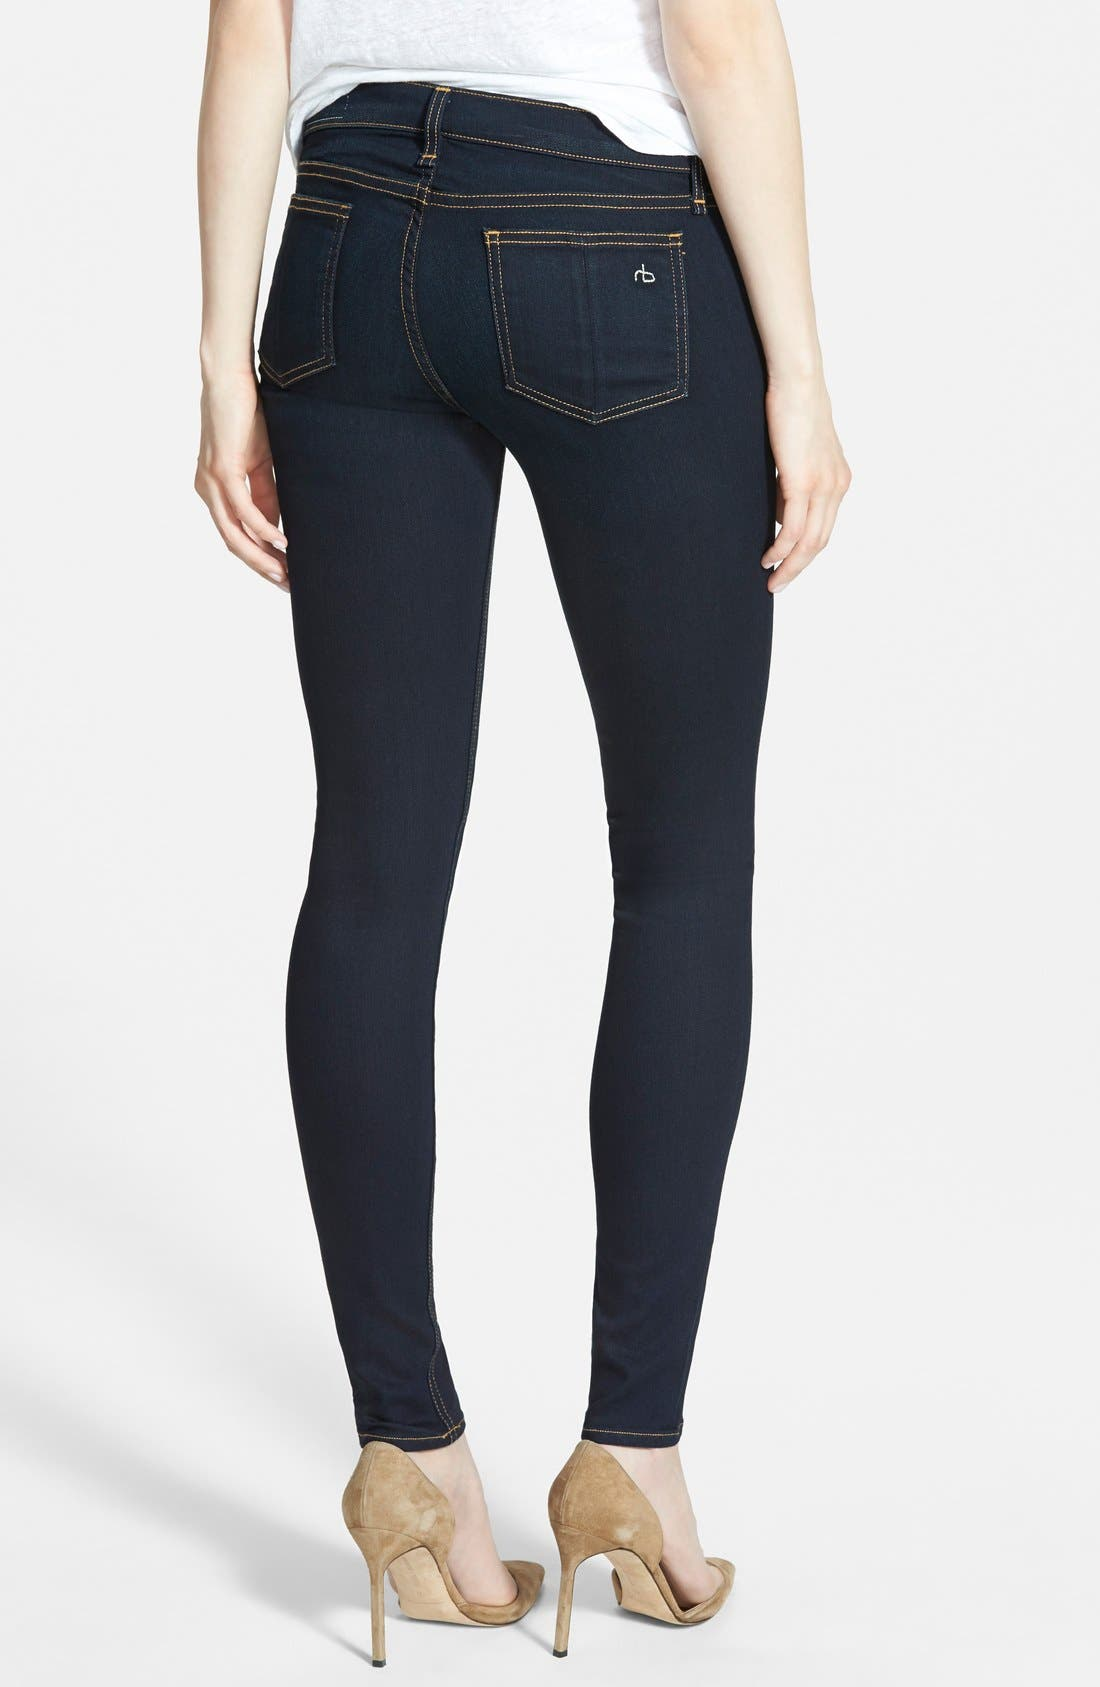 Alternate Image 2  - rag & bone/JEAN 'The Skinny' Mid Rise Jeans (Coventry)